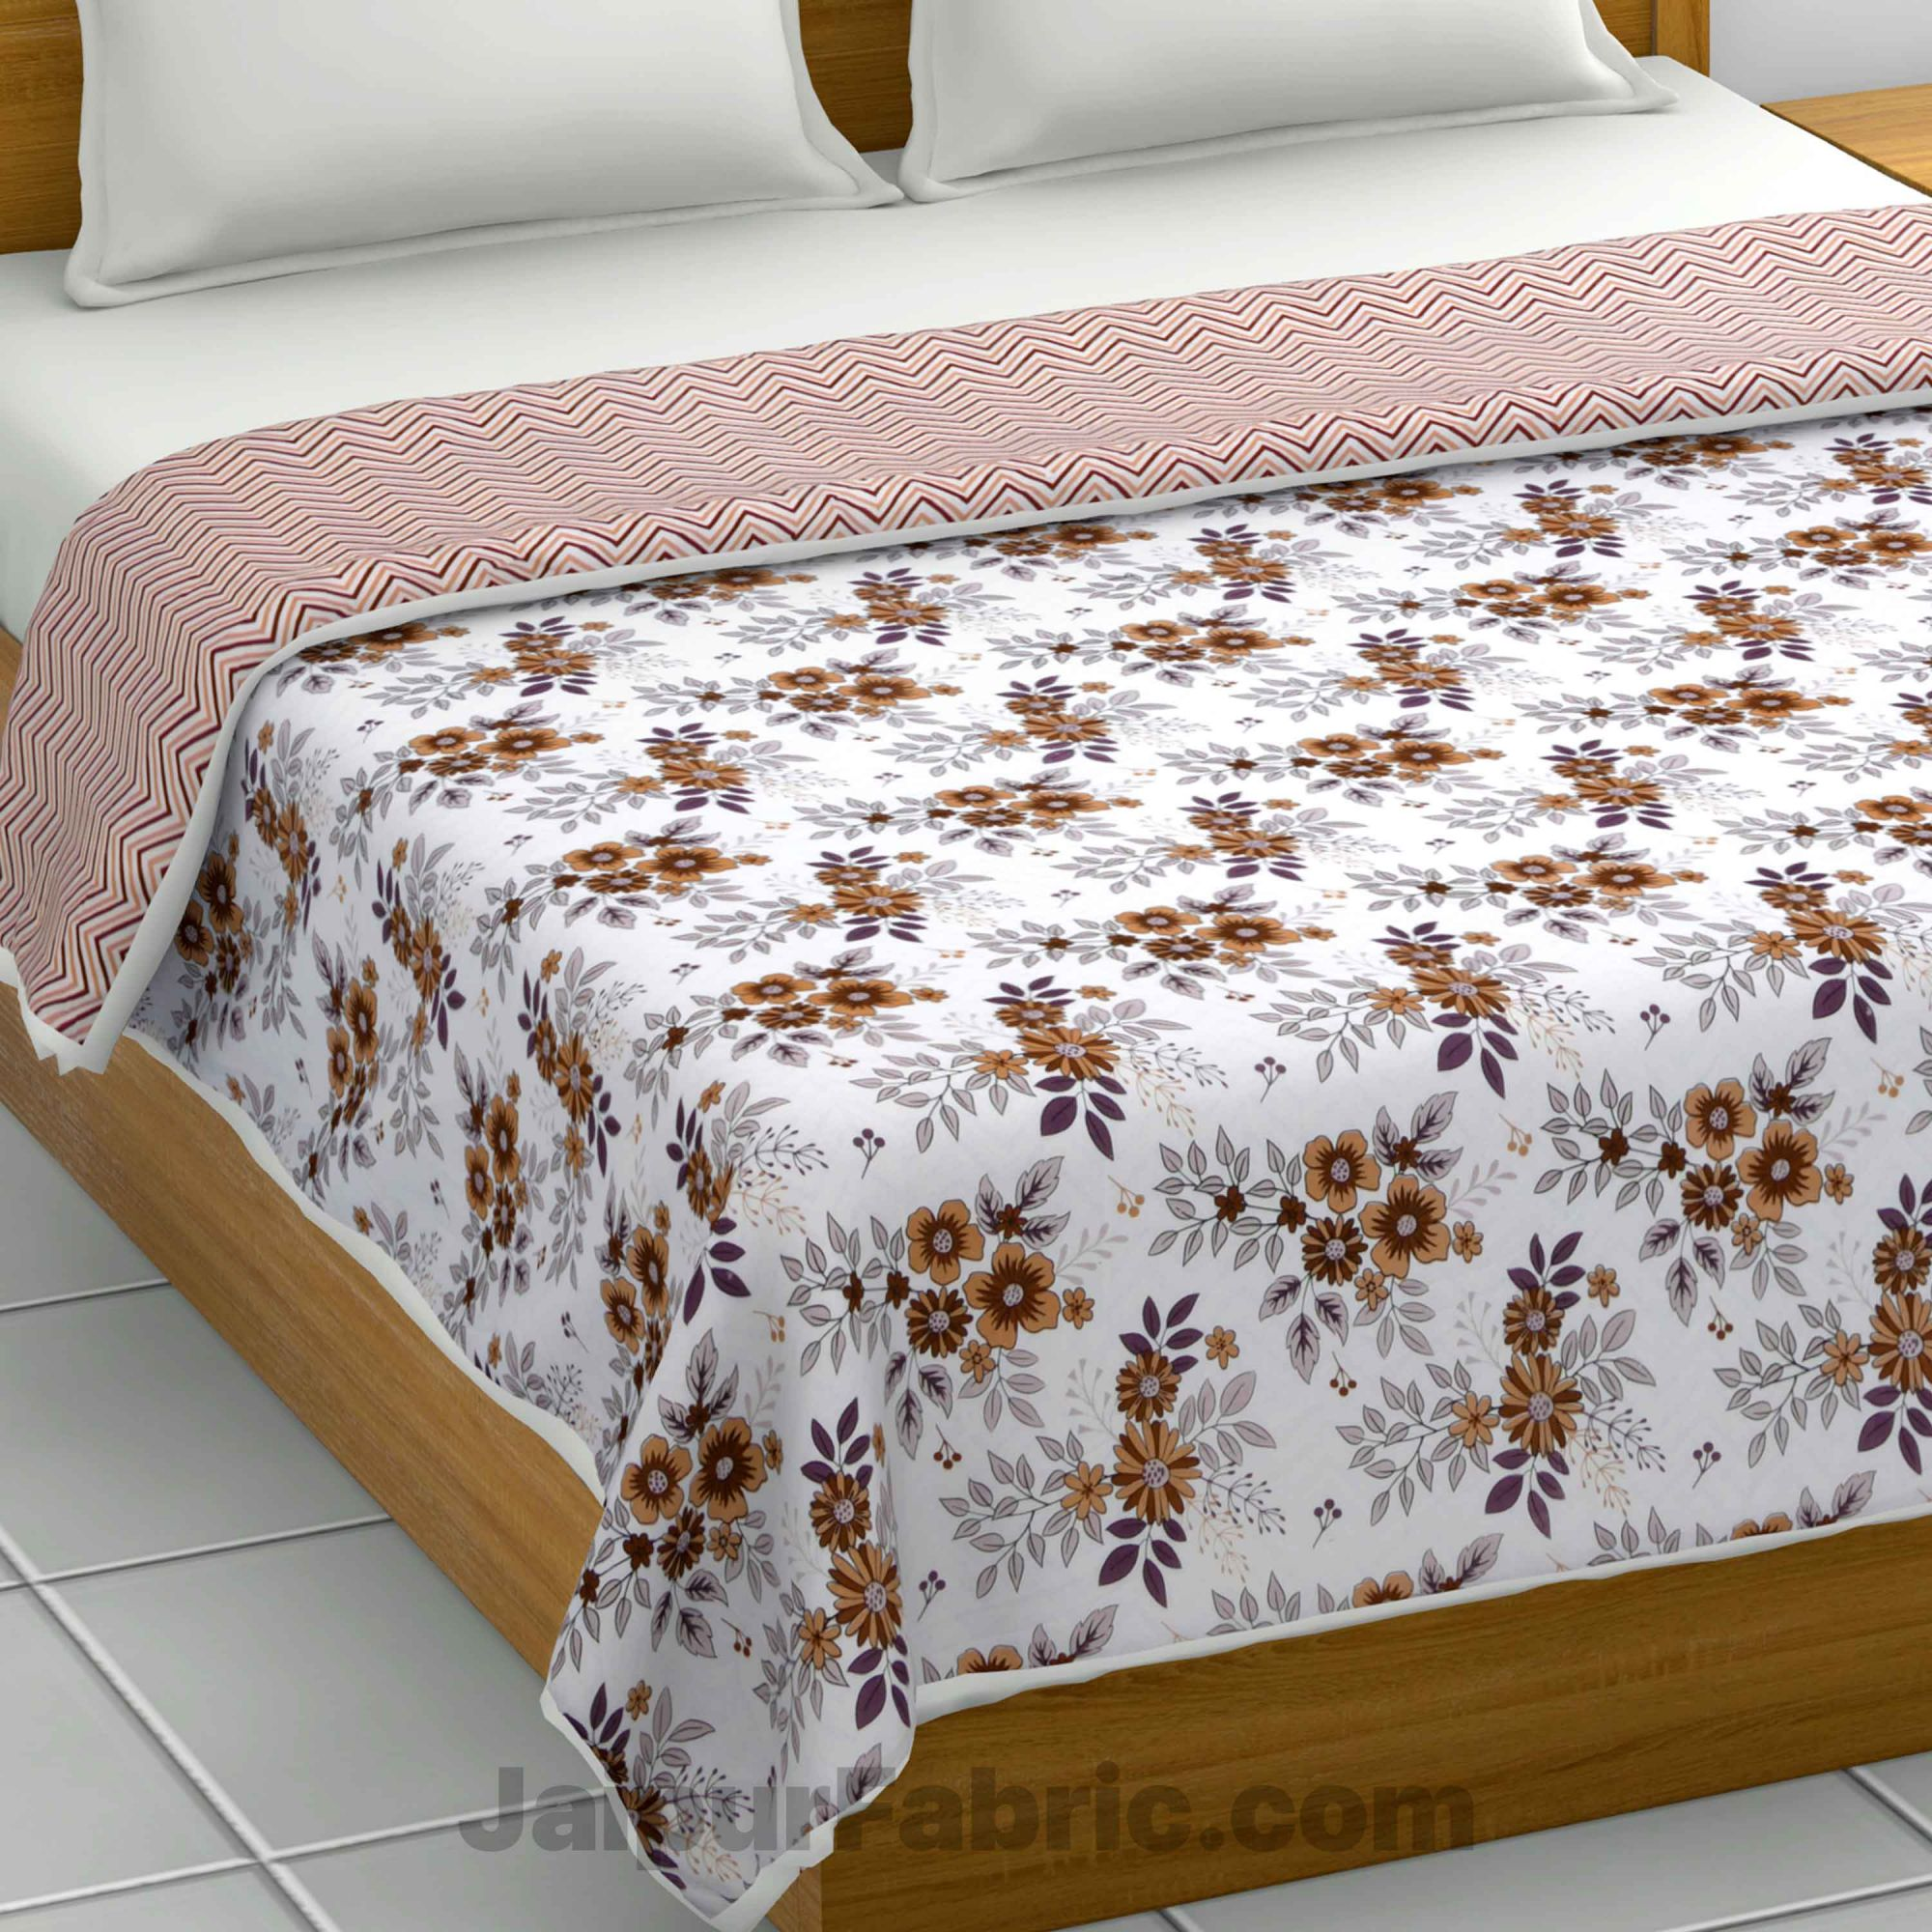 Lightweight Reversible Double Bed Dohar Grey FlowerSkin Friendly Pure Cotton MulMul Blanket / AC Comforter / Summer Quilt